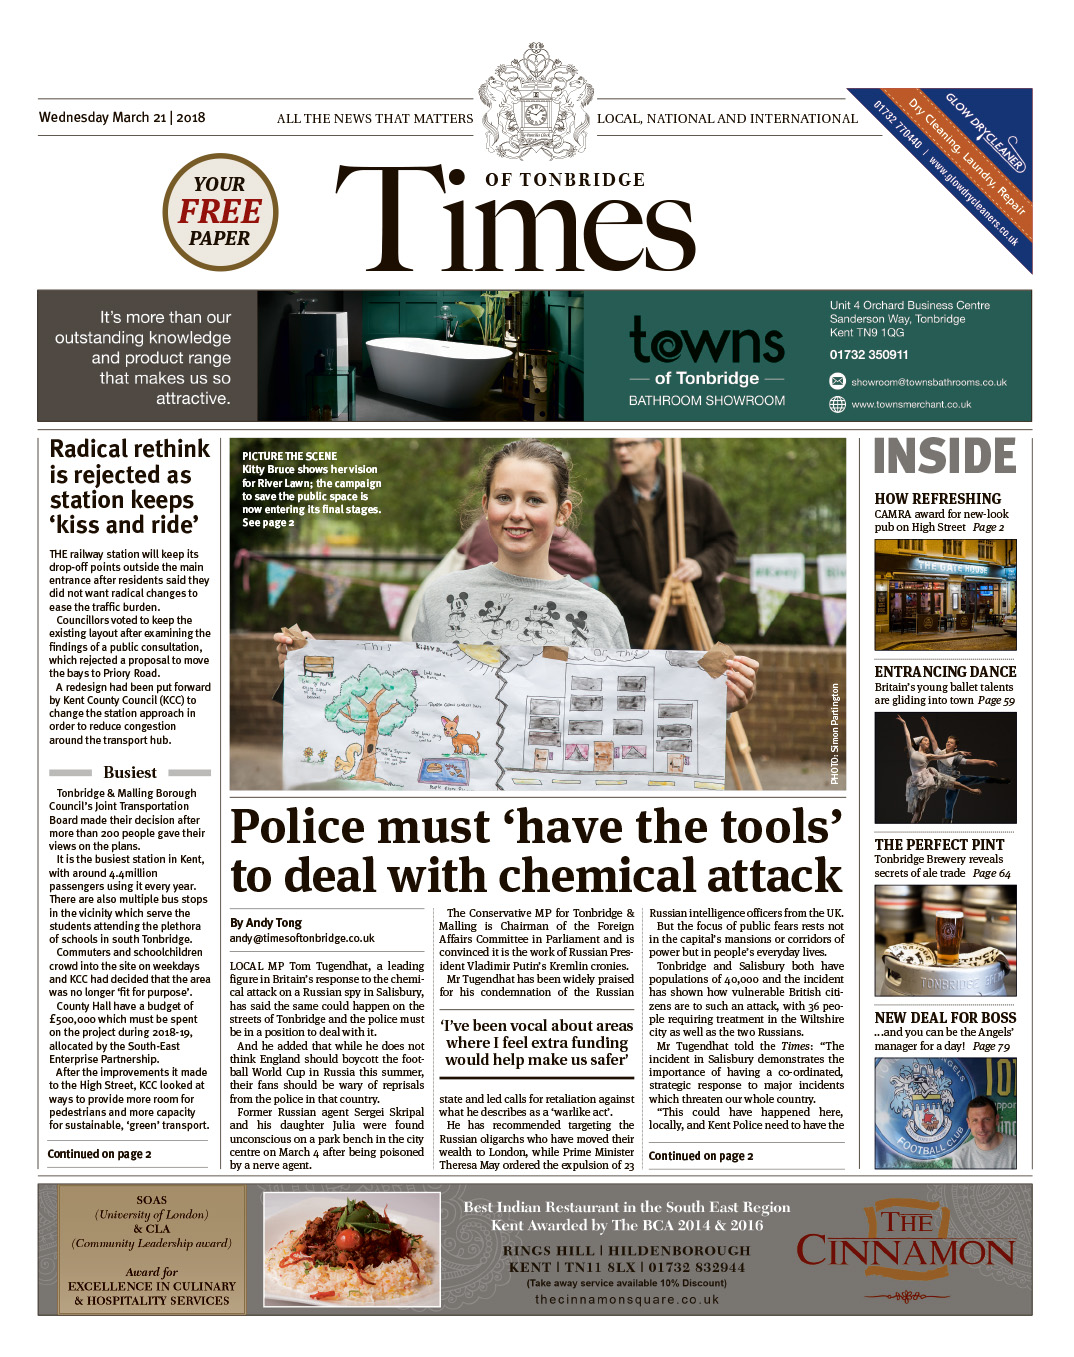 Read the Times of Tonbridge 21st March 2018